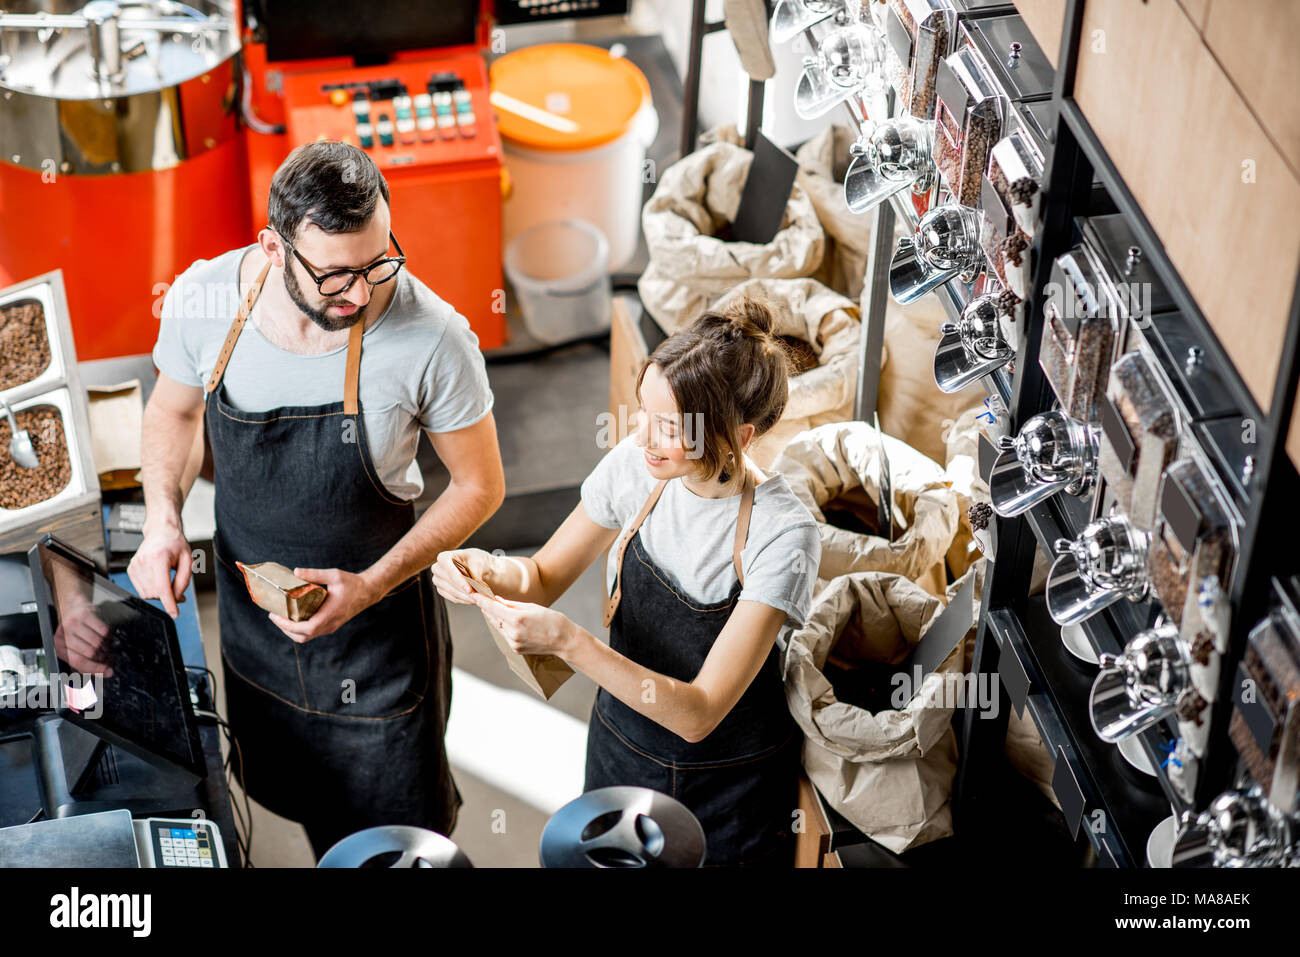 Two sellers in uniform filling and weighing bags with coffee in the coffee store. View from above - Stock Image